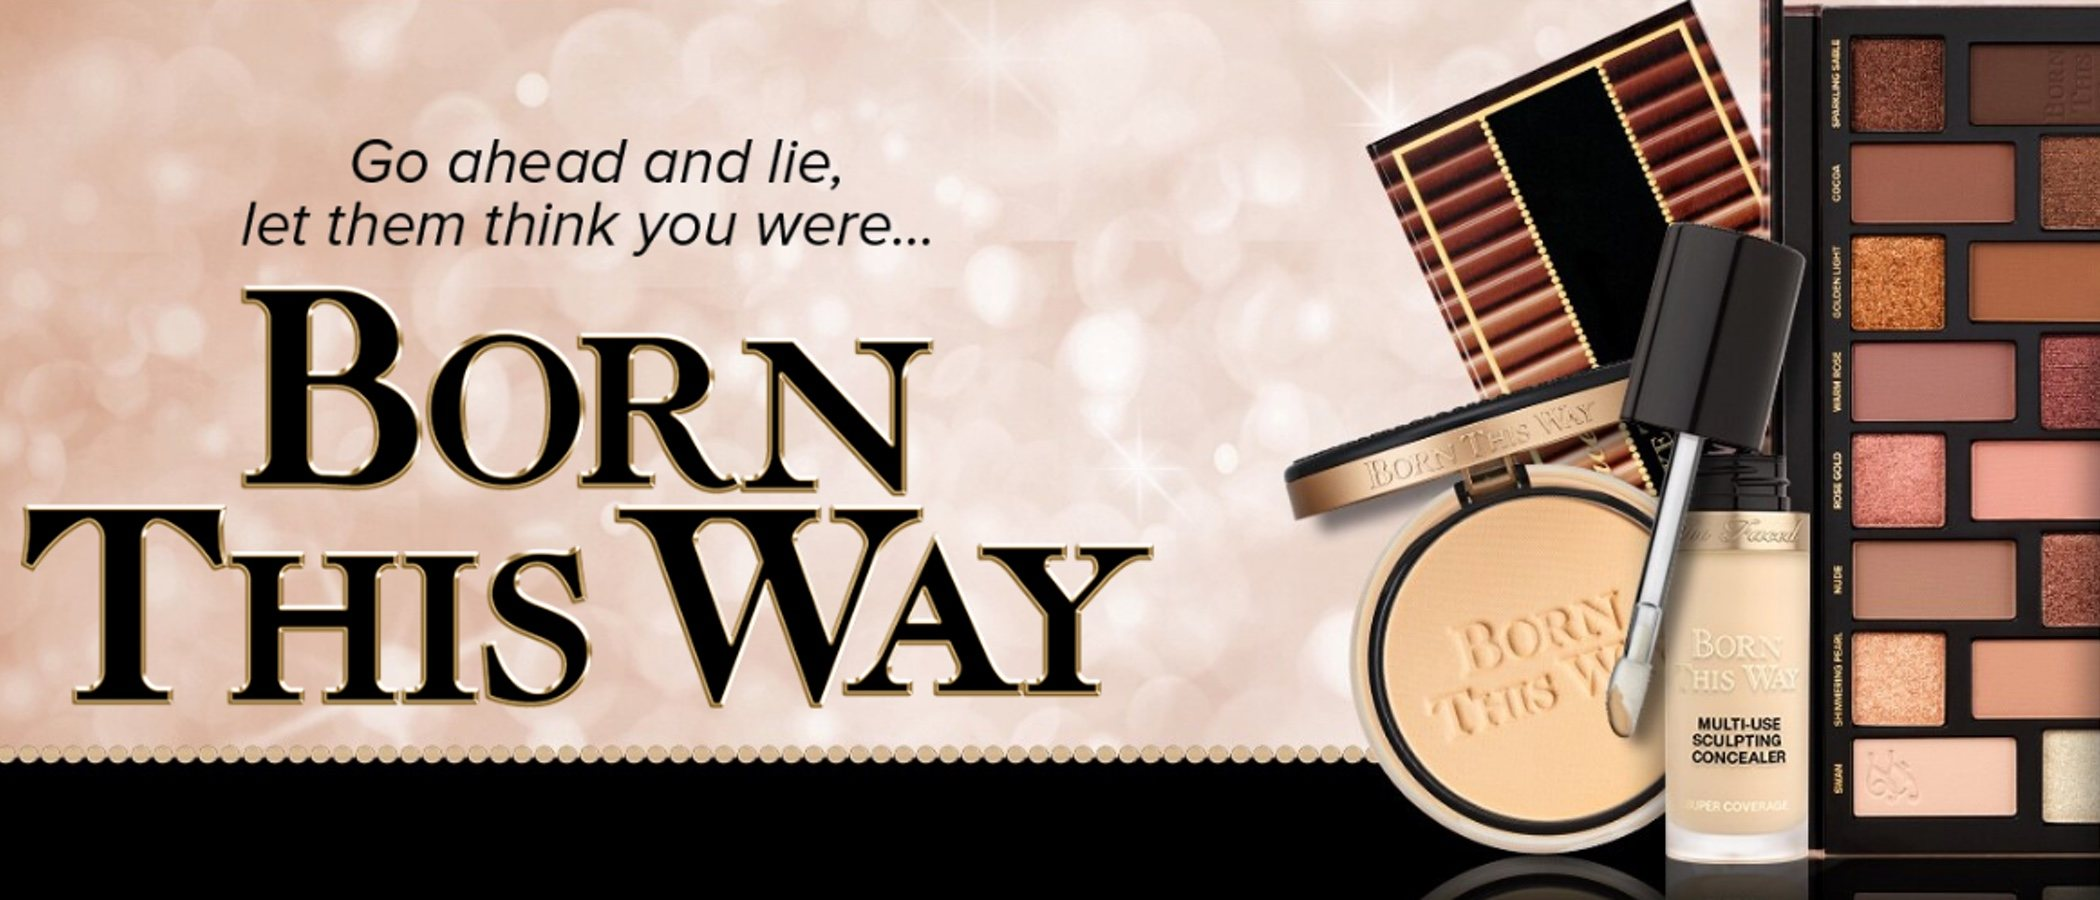 'Born This Way' de Too Faced lanza dos nuevas paletas nude